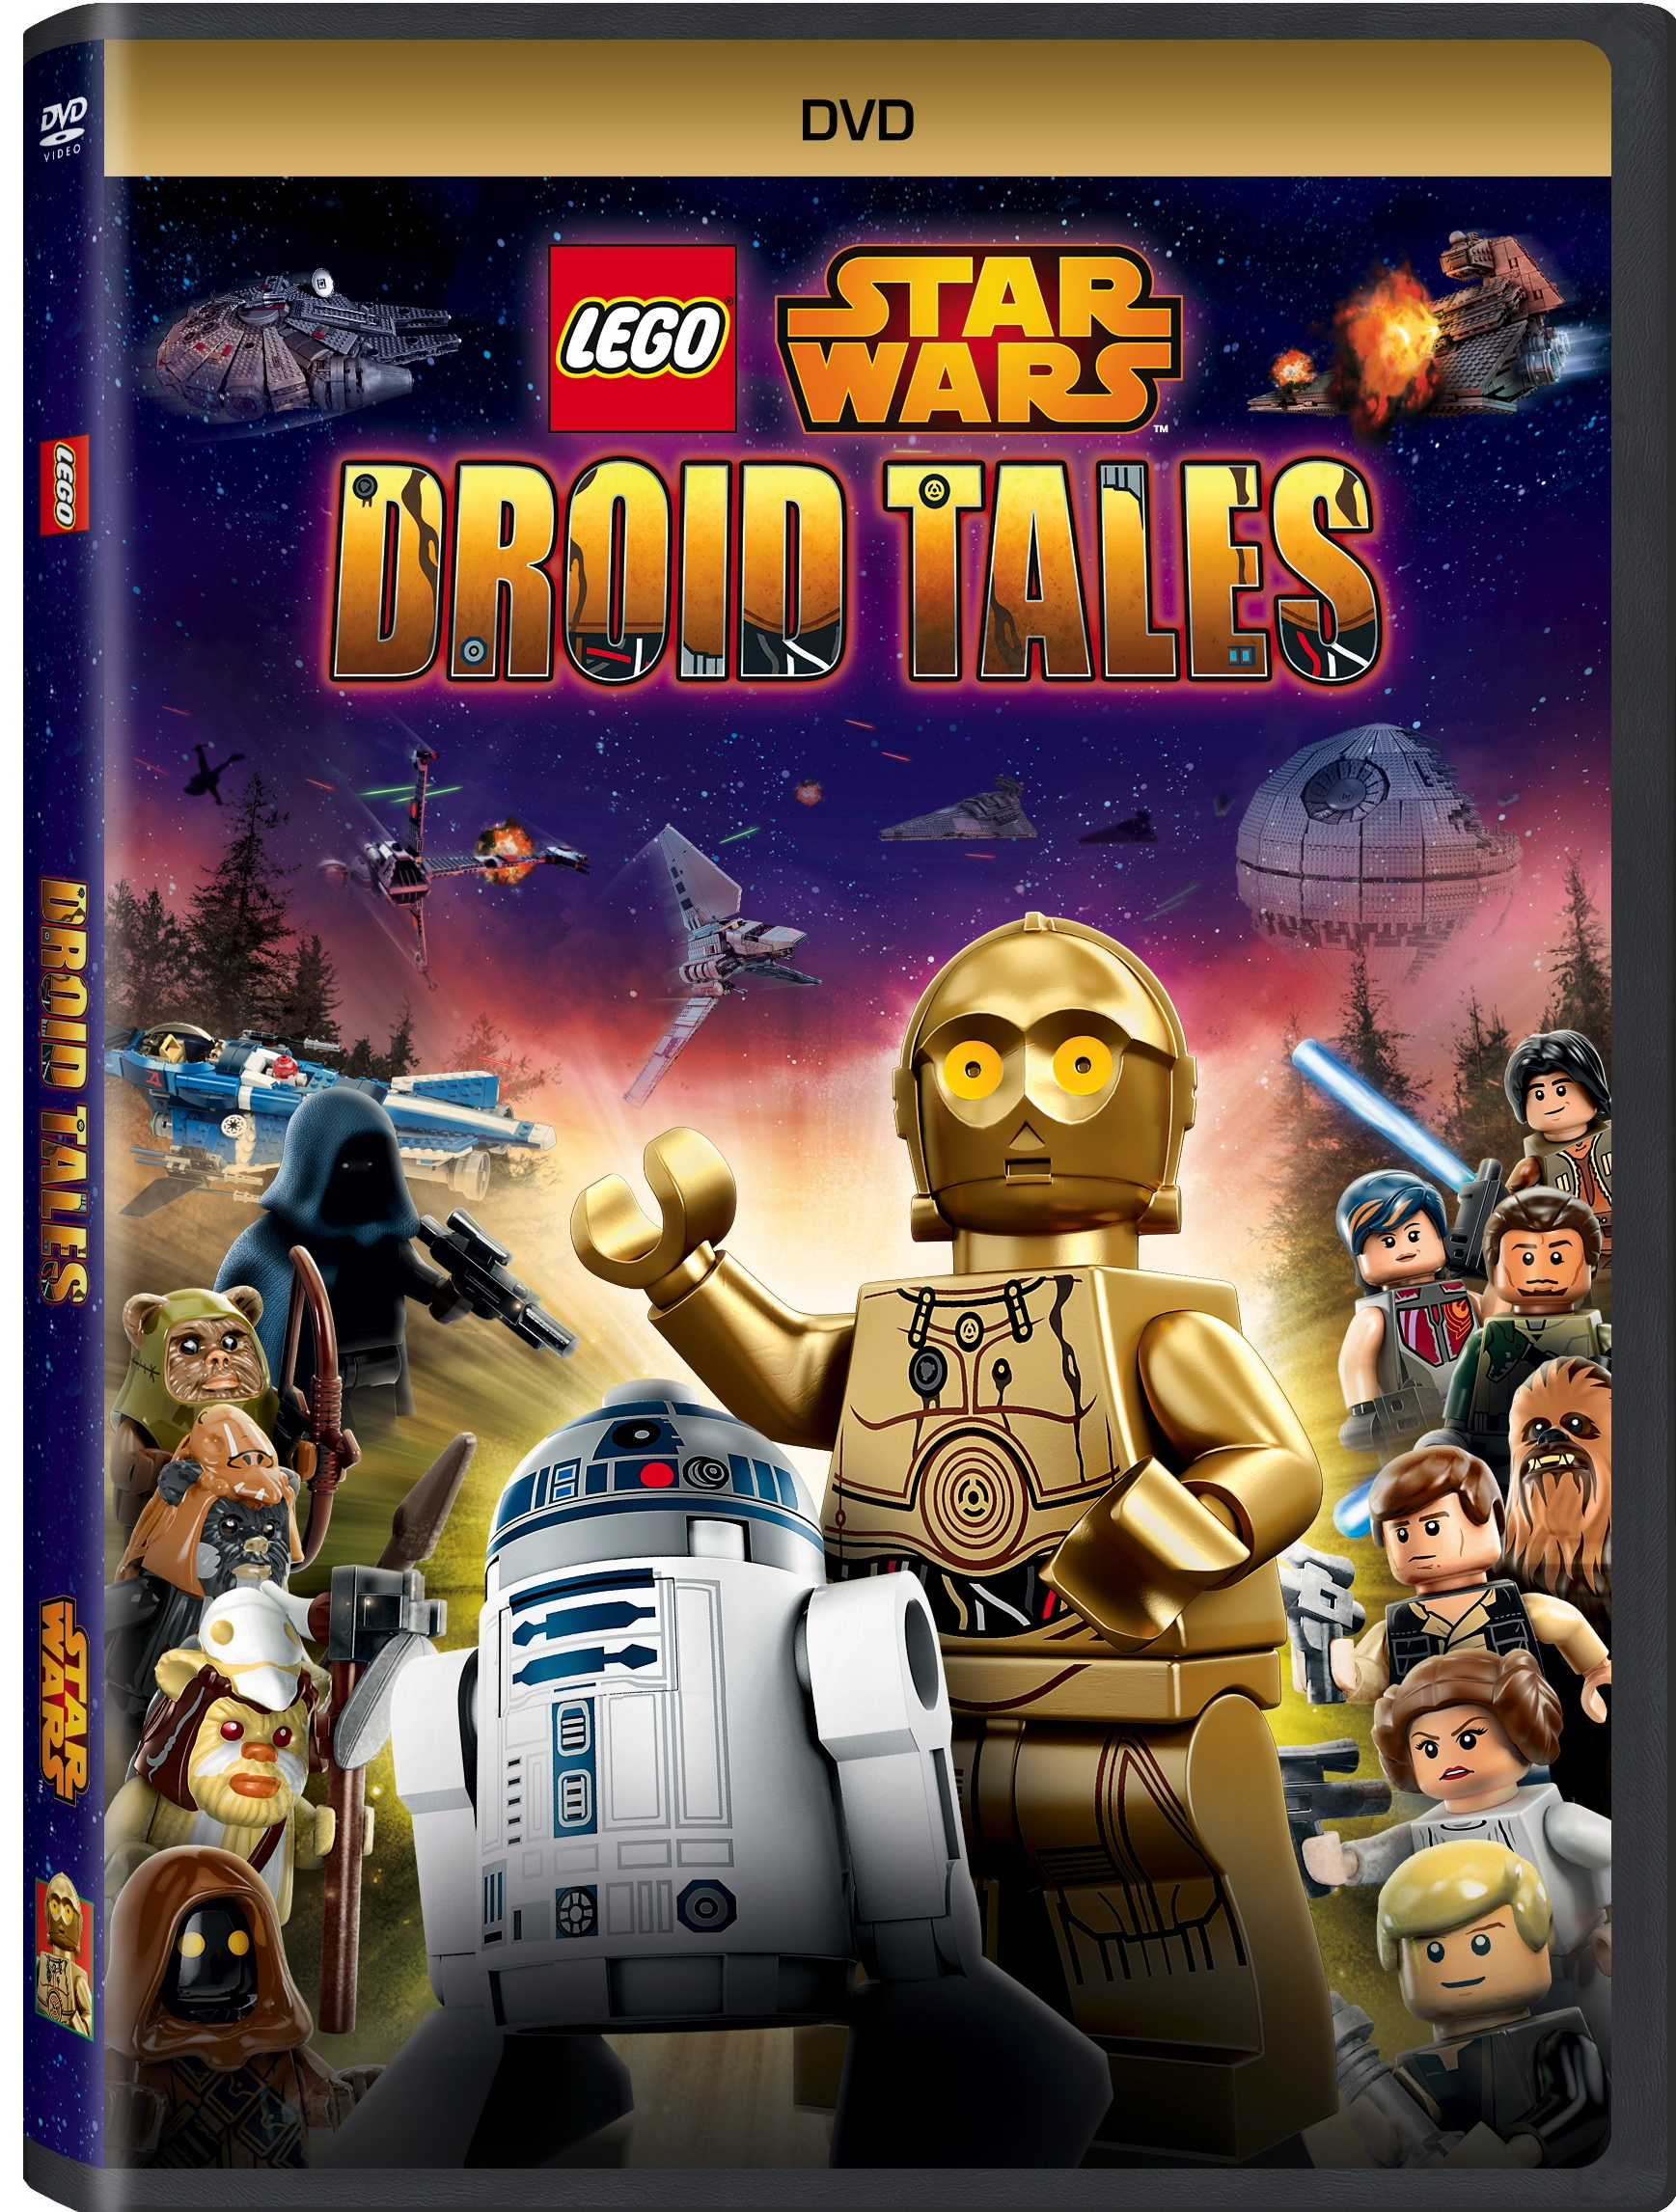 Lego Star Wars Droid Tales Disney Wiki Fandom Powered By Wikia